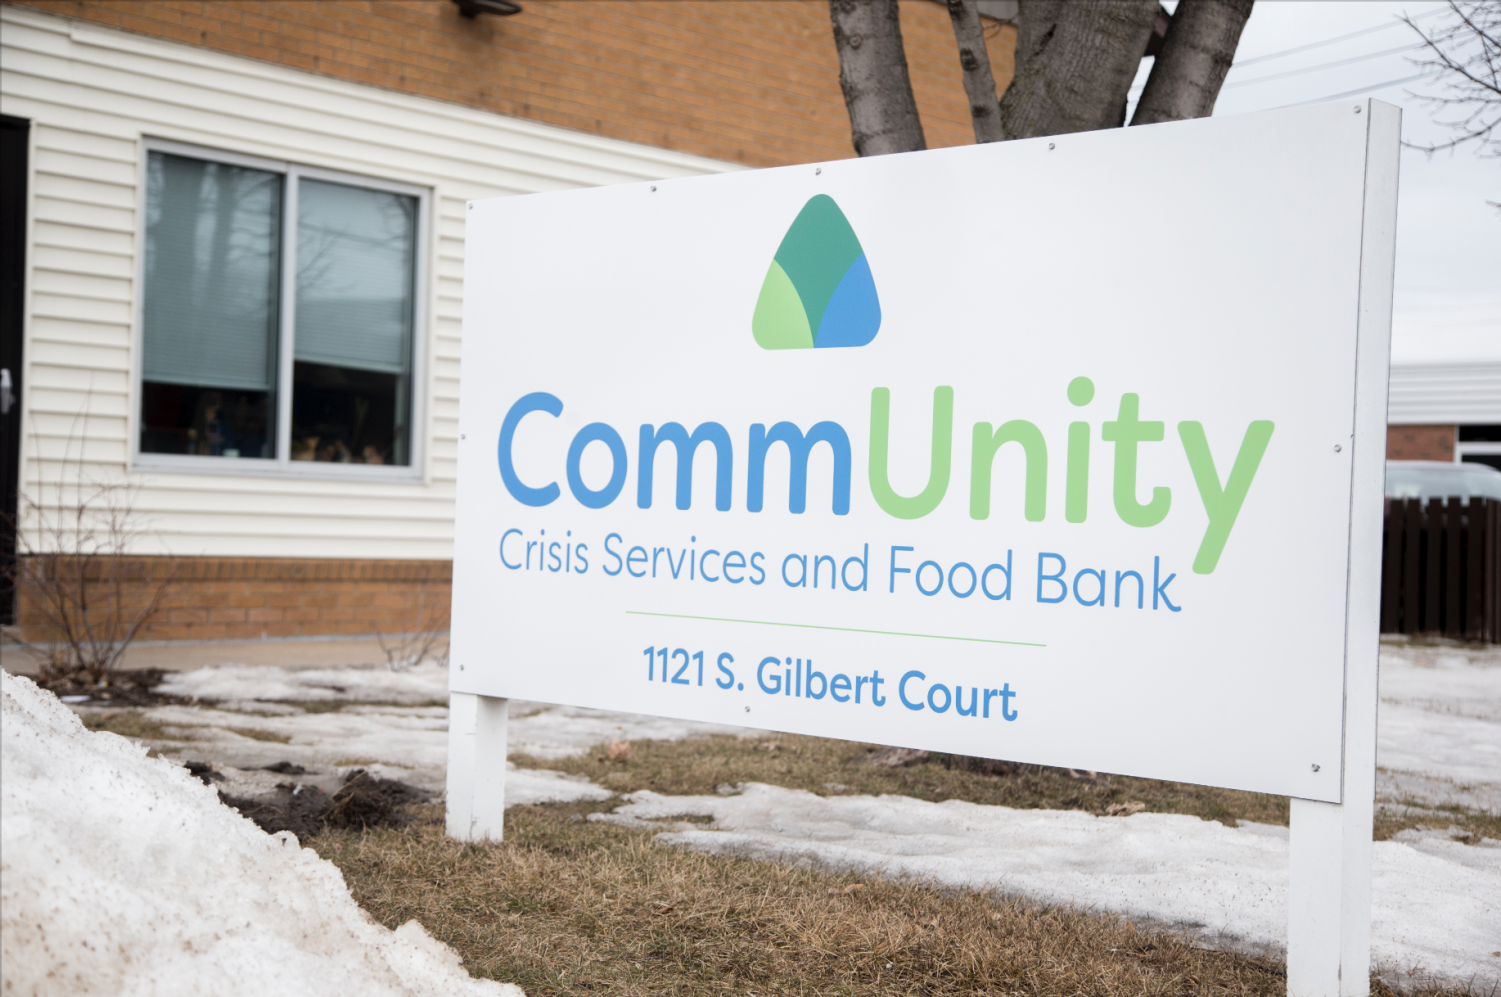 The CommUnity Crisis Services and Food Bank is seen on March 12, 2019. Formerly known as the Crisis Center of Johnson County, the food bank rebranded in order to emphasize the importance of community.